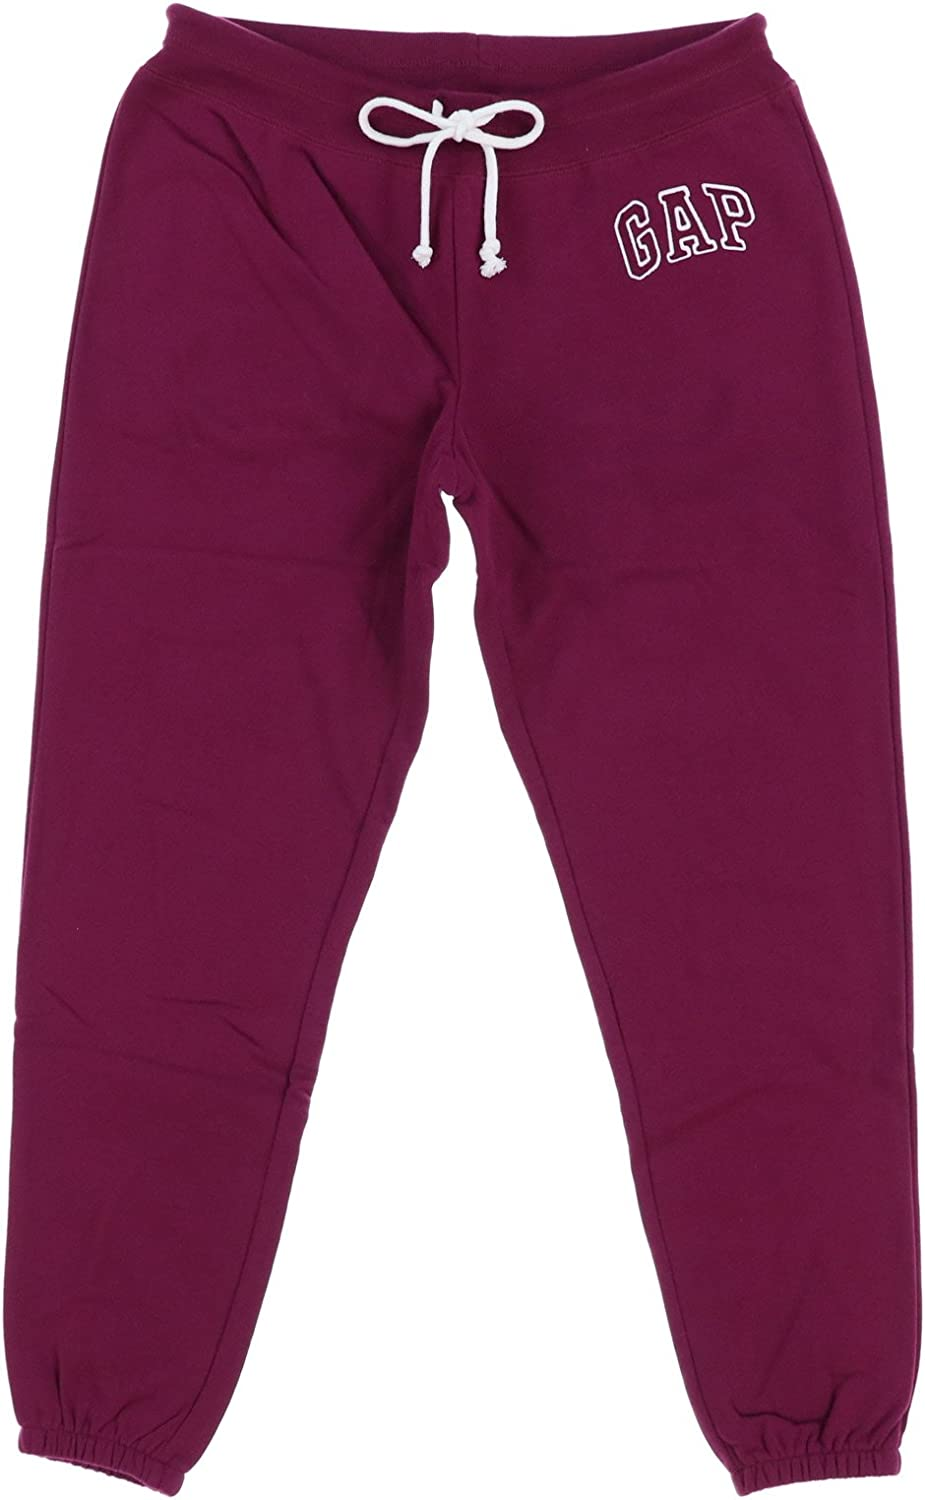 Gap Women's Fleece Logo Sweatpant